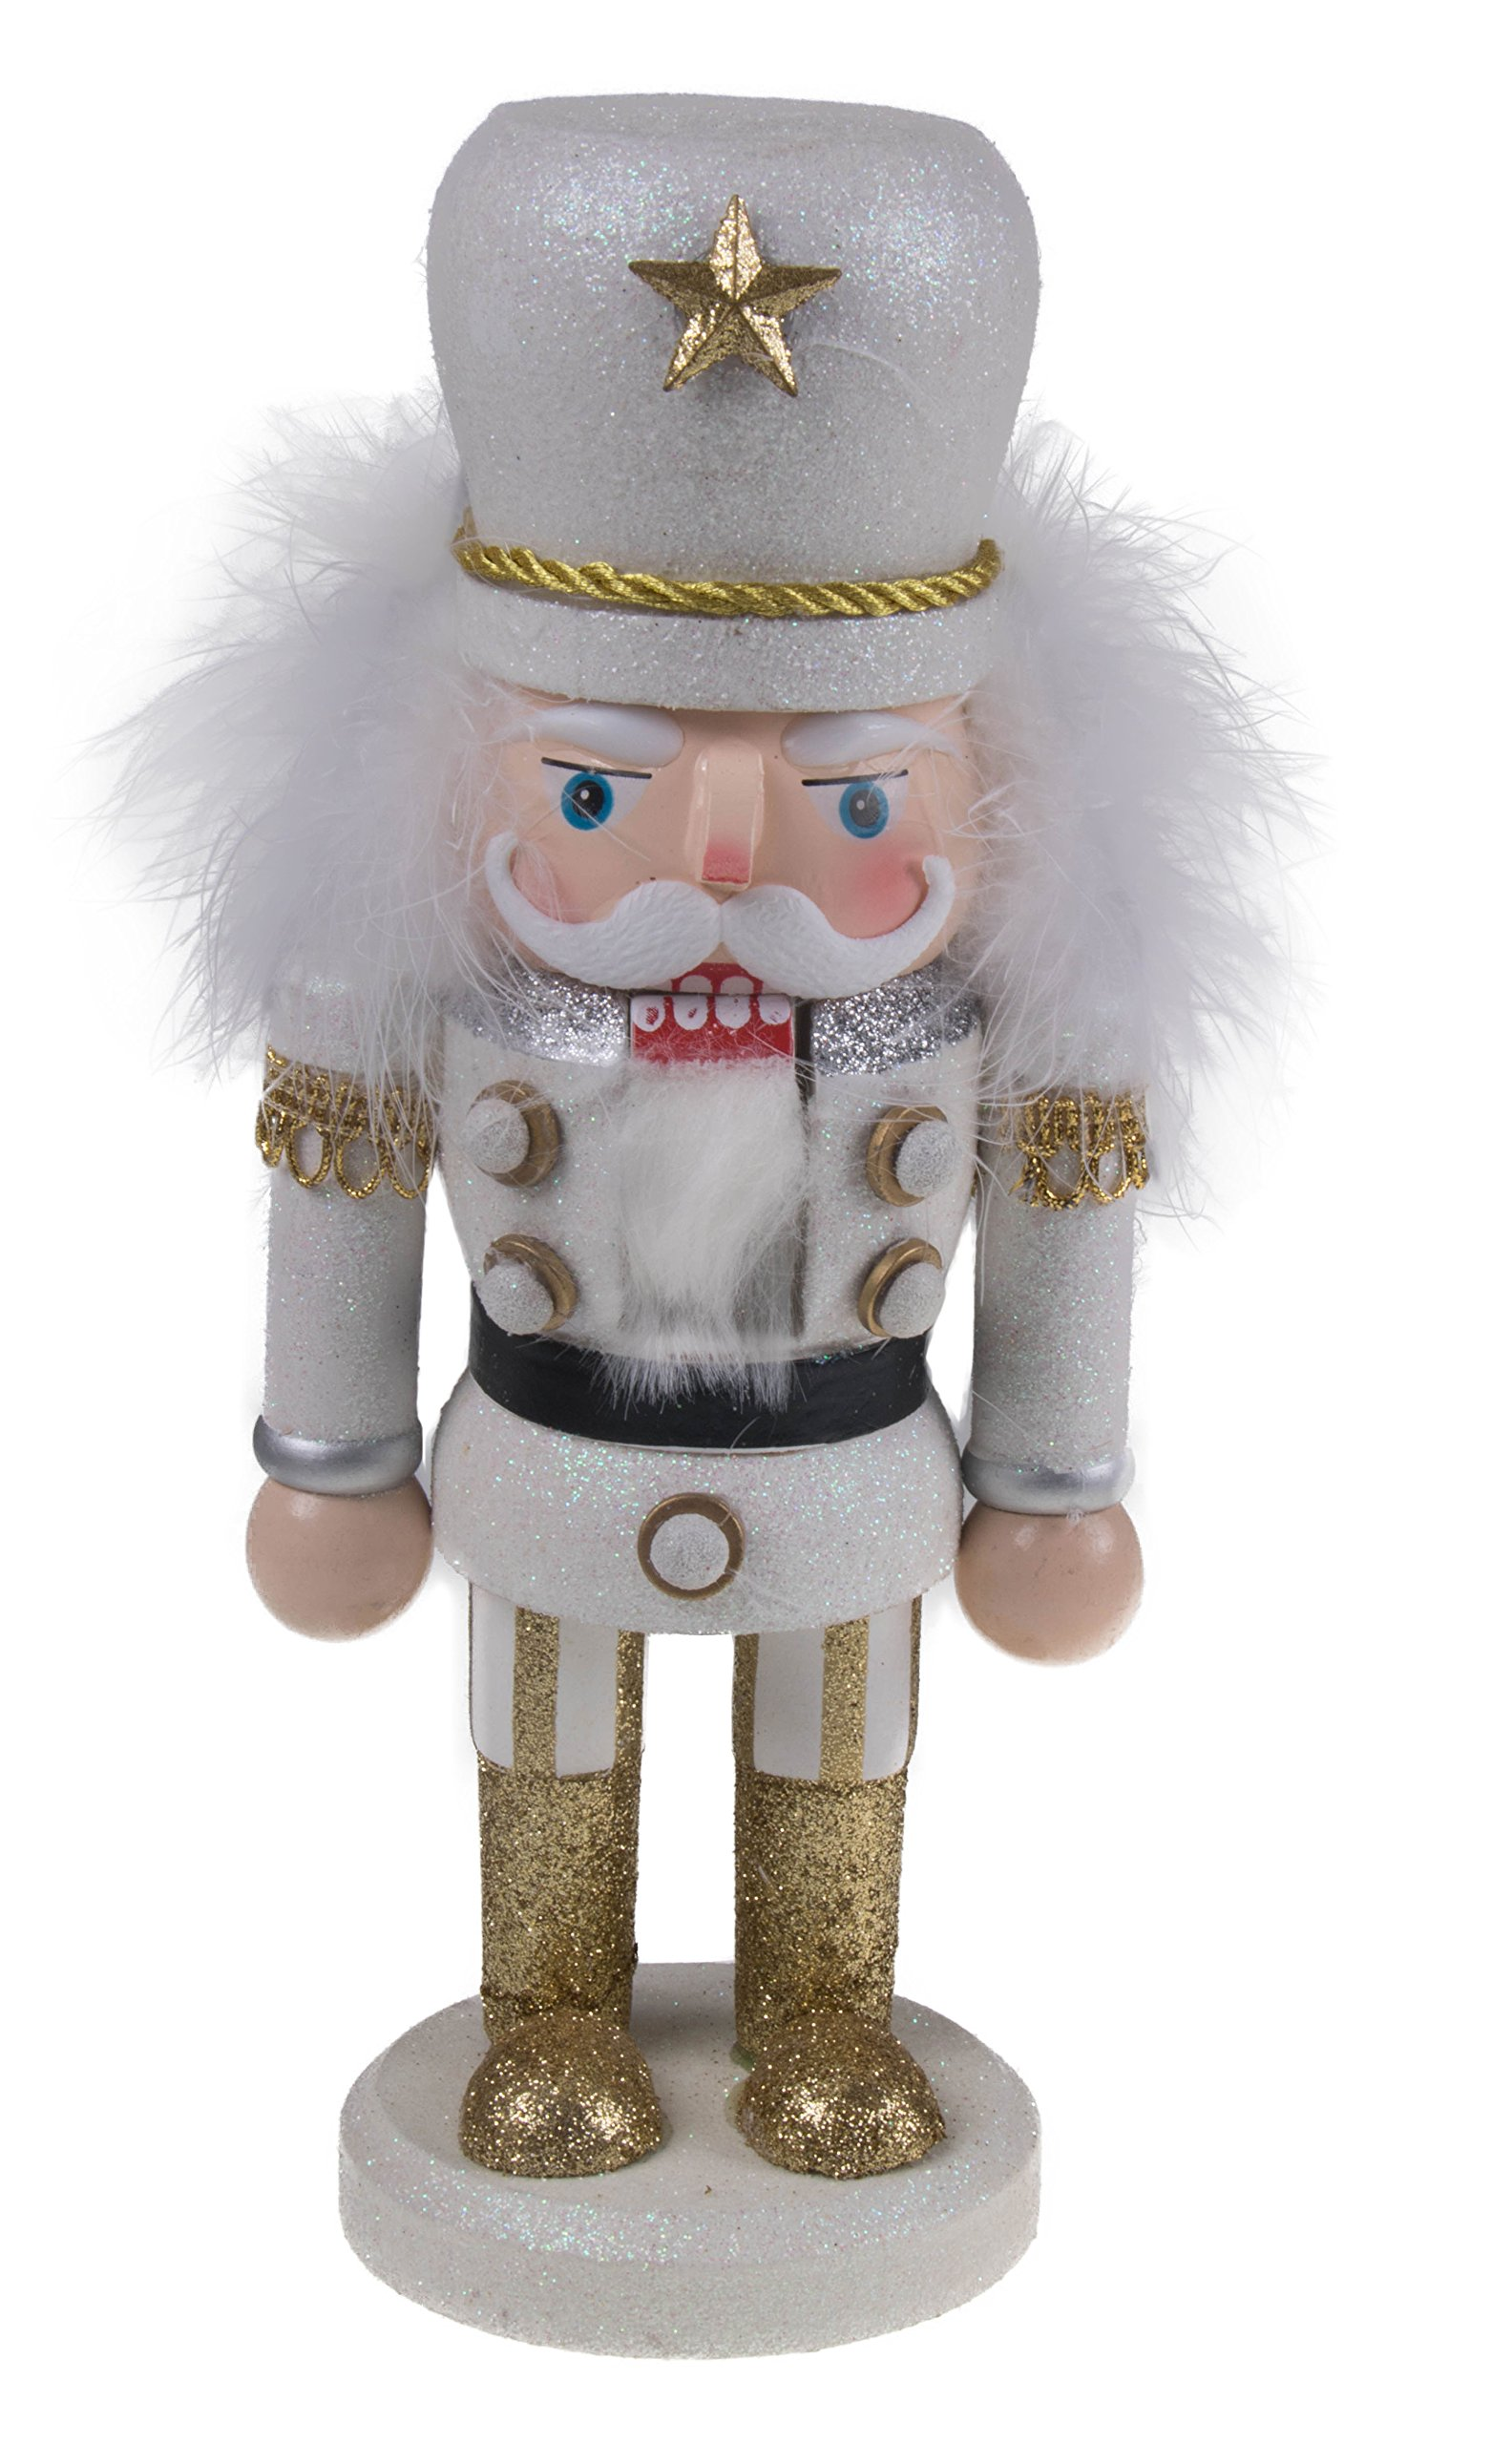 Clever Creations Traditional Chubby Style Officer Nutcracker by Glitter Uniform | Collectible Wooden Christmas Nutcracker | Festive Holiday Décor | Ornate Details | 100% Wood | 10'' Tall | White/Gold